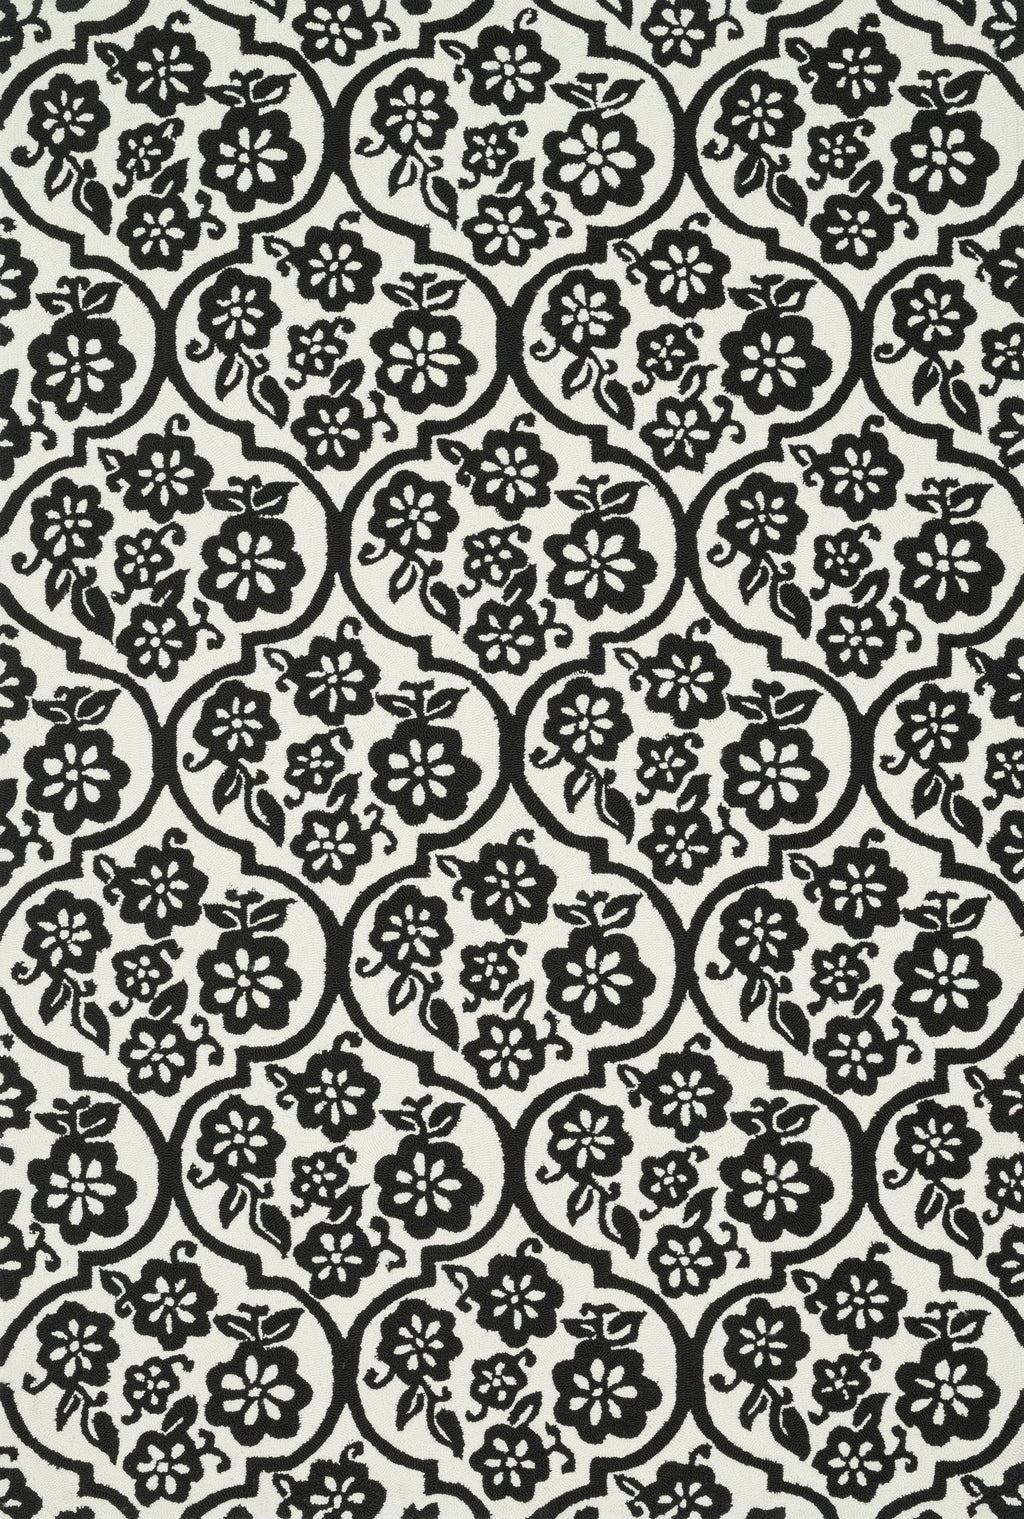 VENICE BEACH Collection Rug  in  IVORY / BLACK Ivory Medium Hand-Hooked Polypropylene